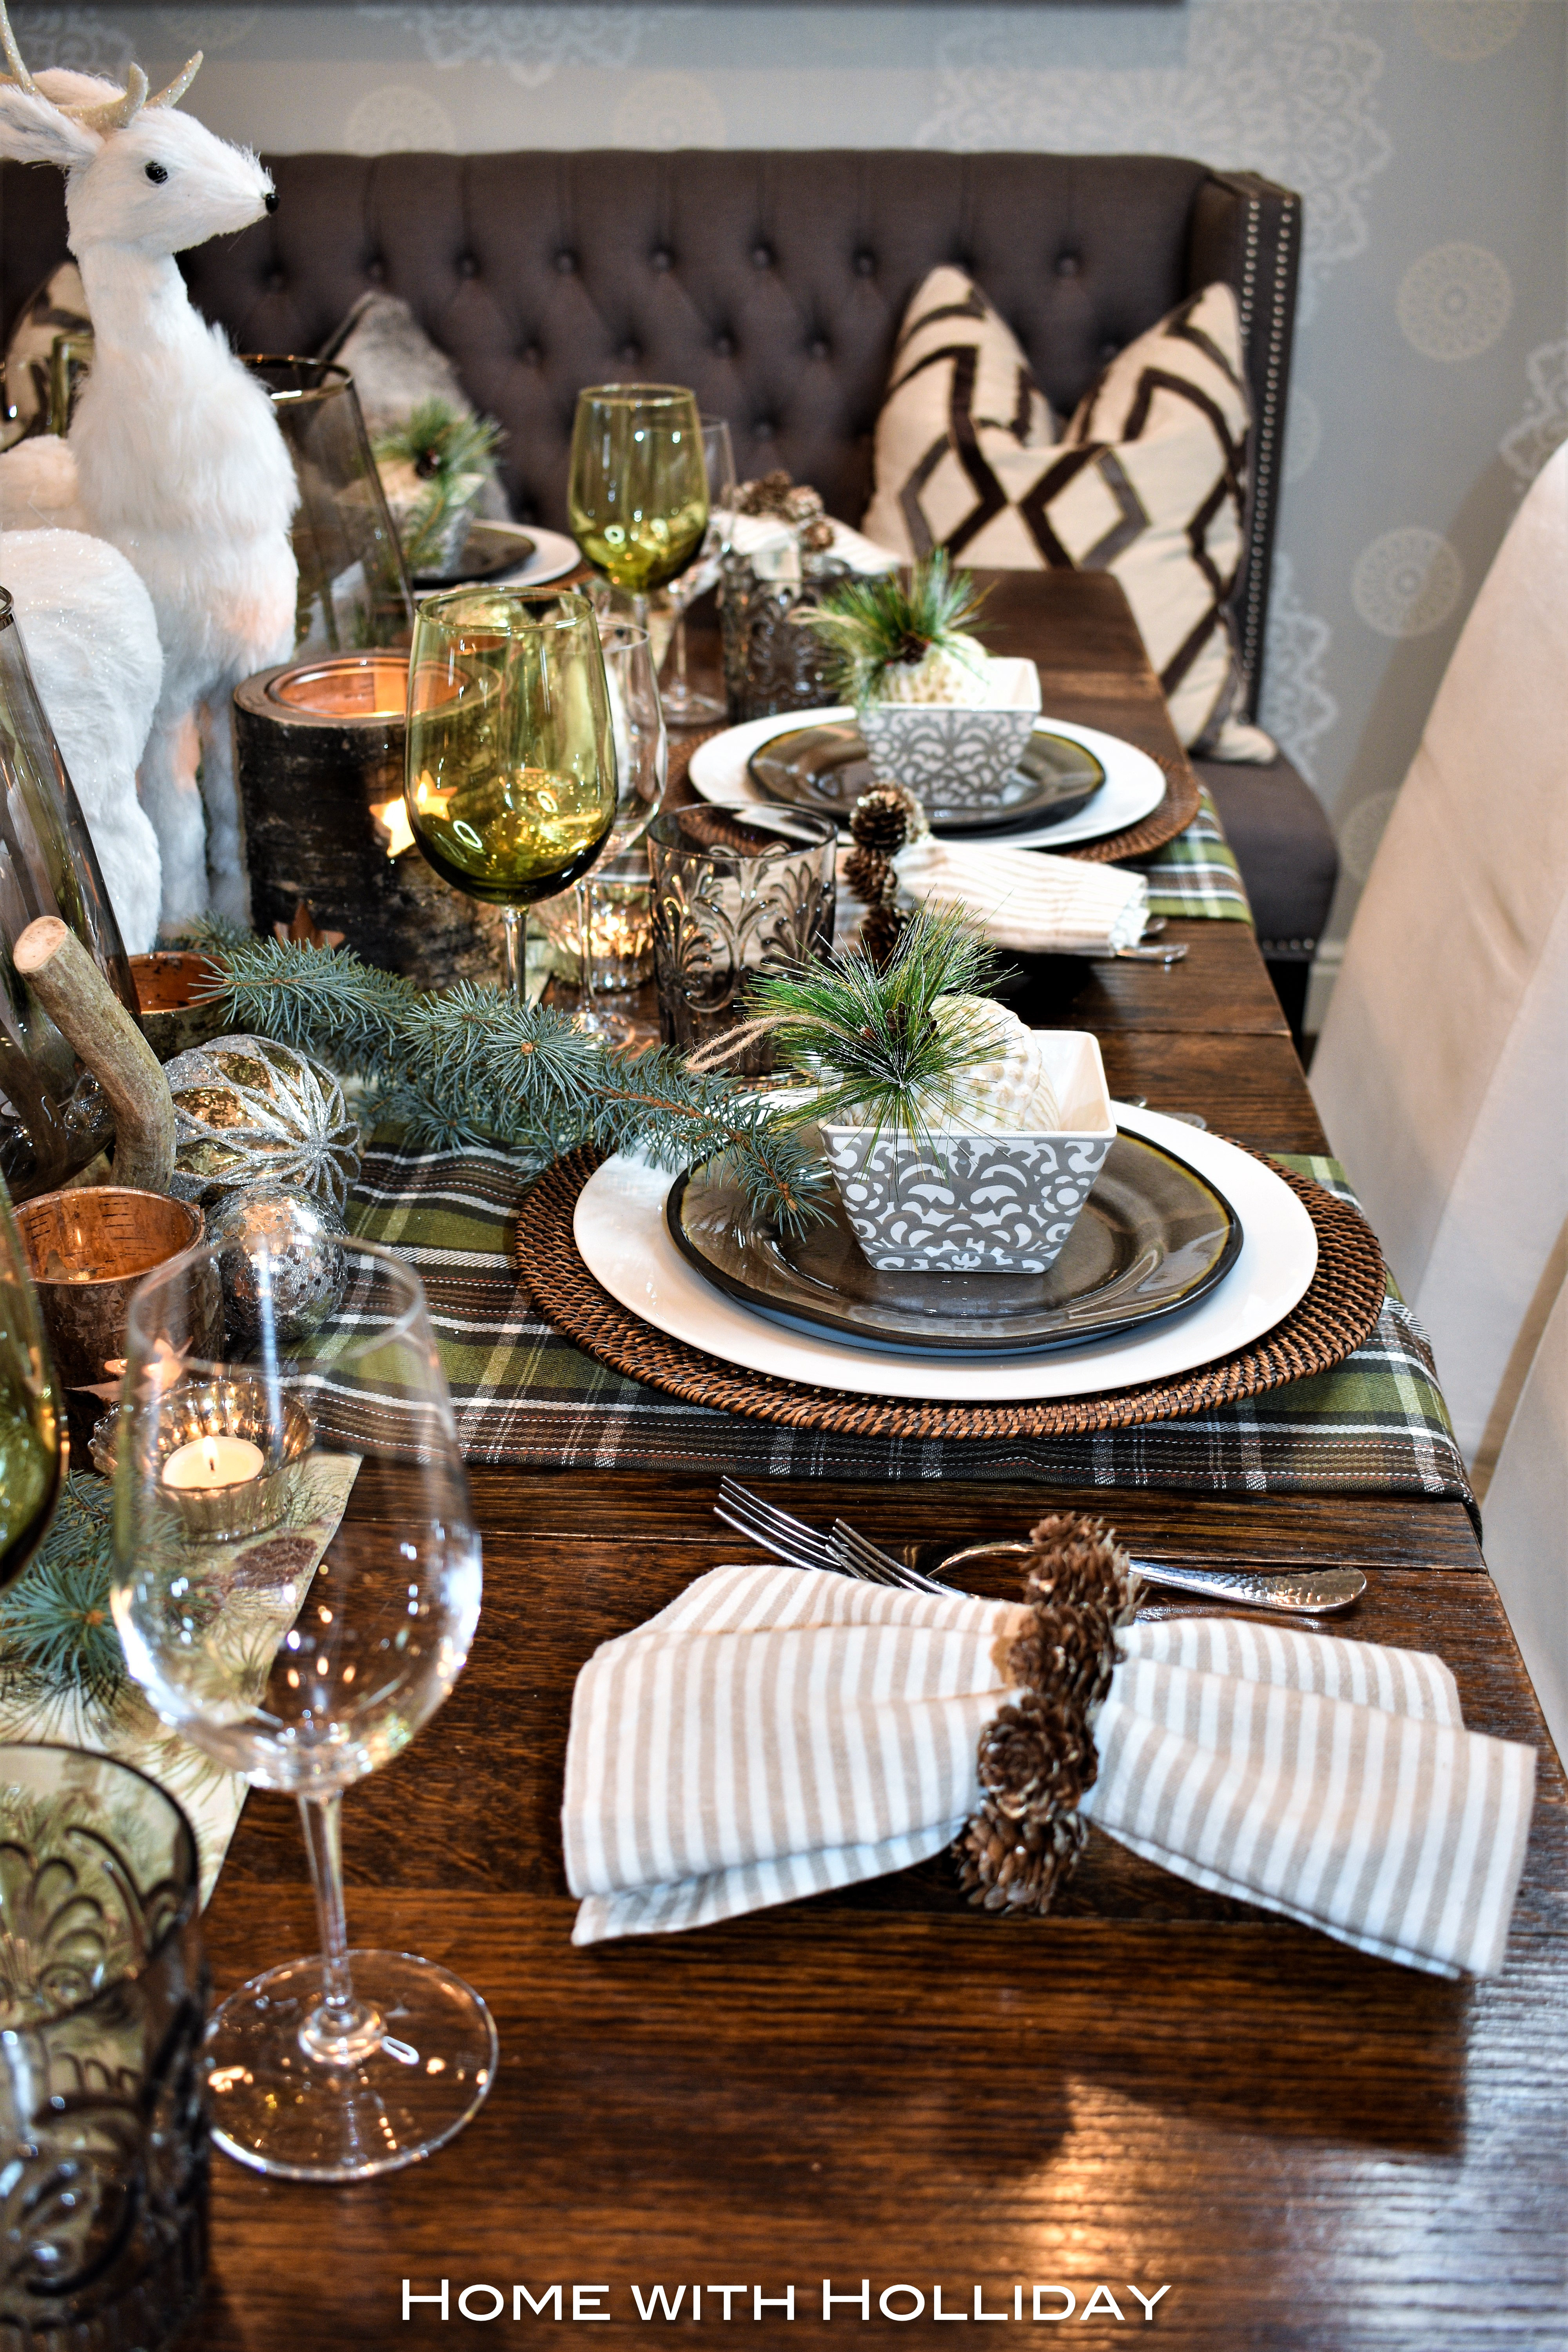 Place Settings for a Rustic Winter Christmas Table Setting